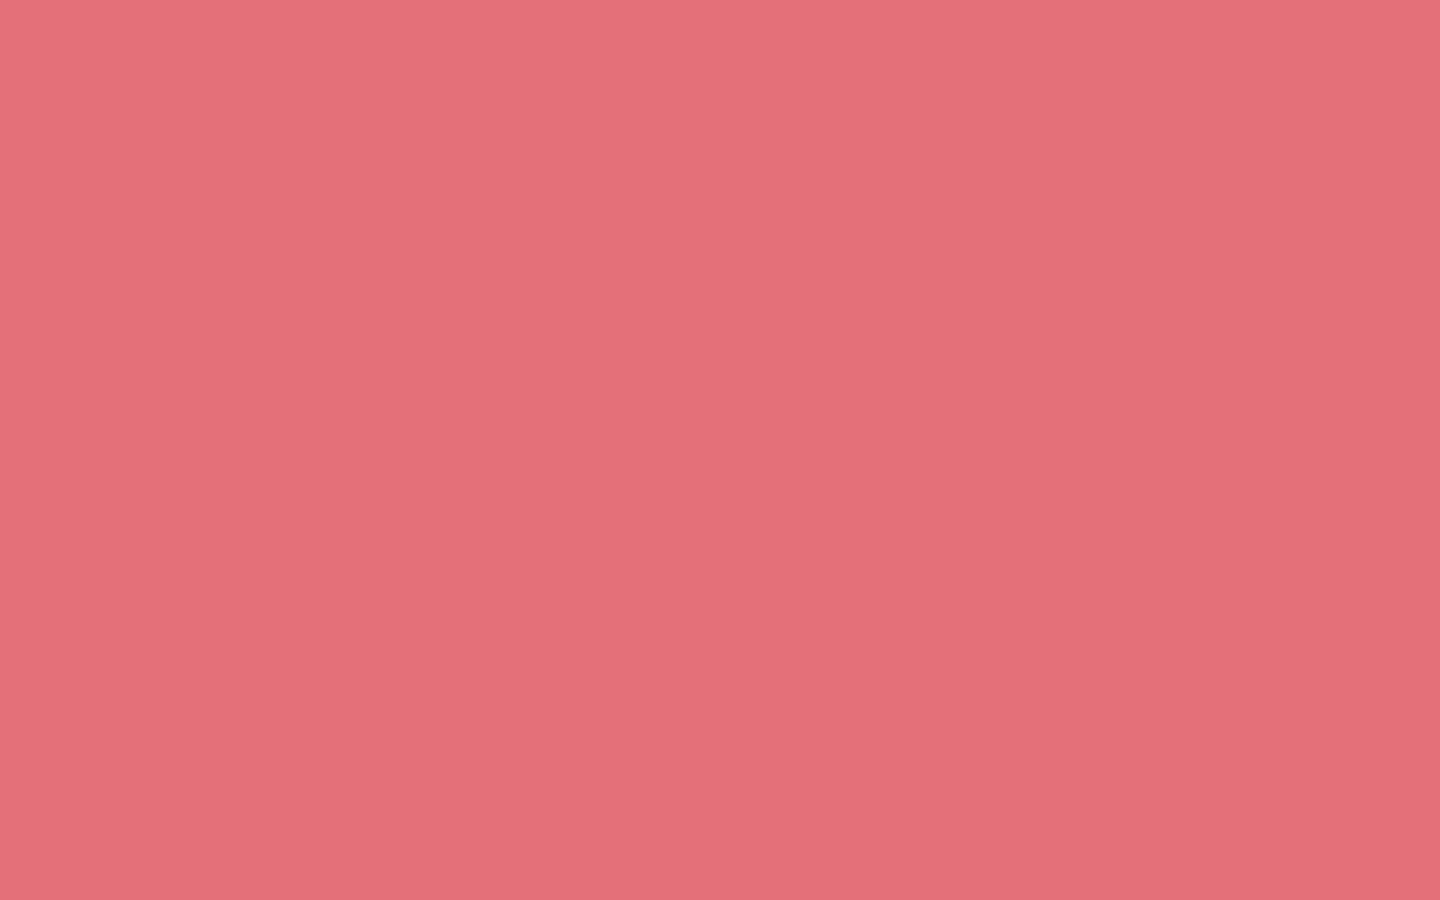 1440x900 Tango Pink Solid Color Background